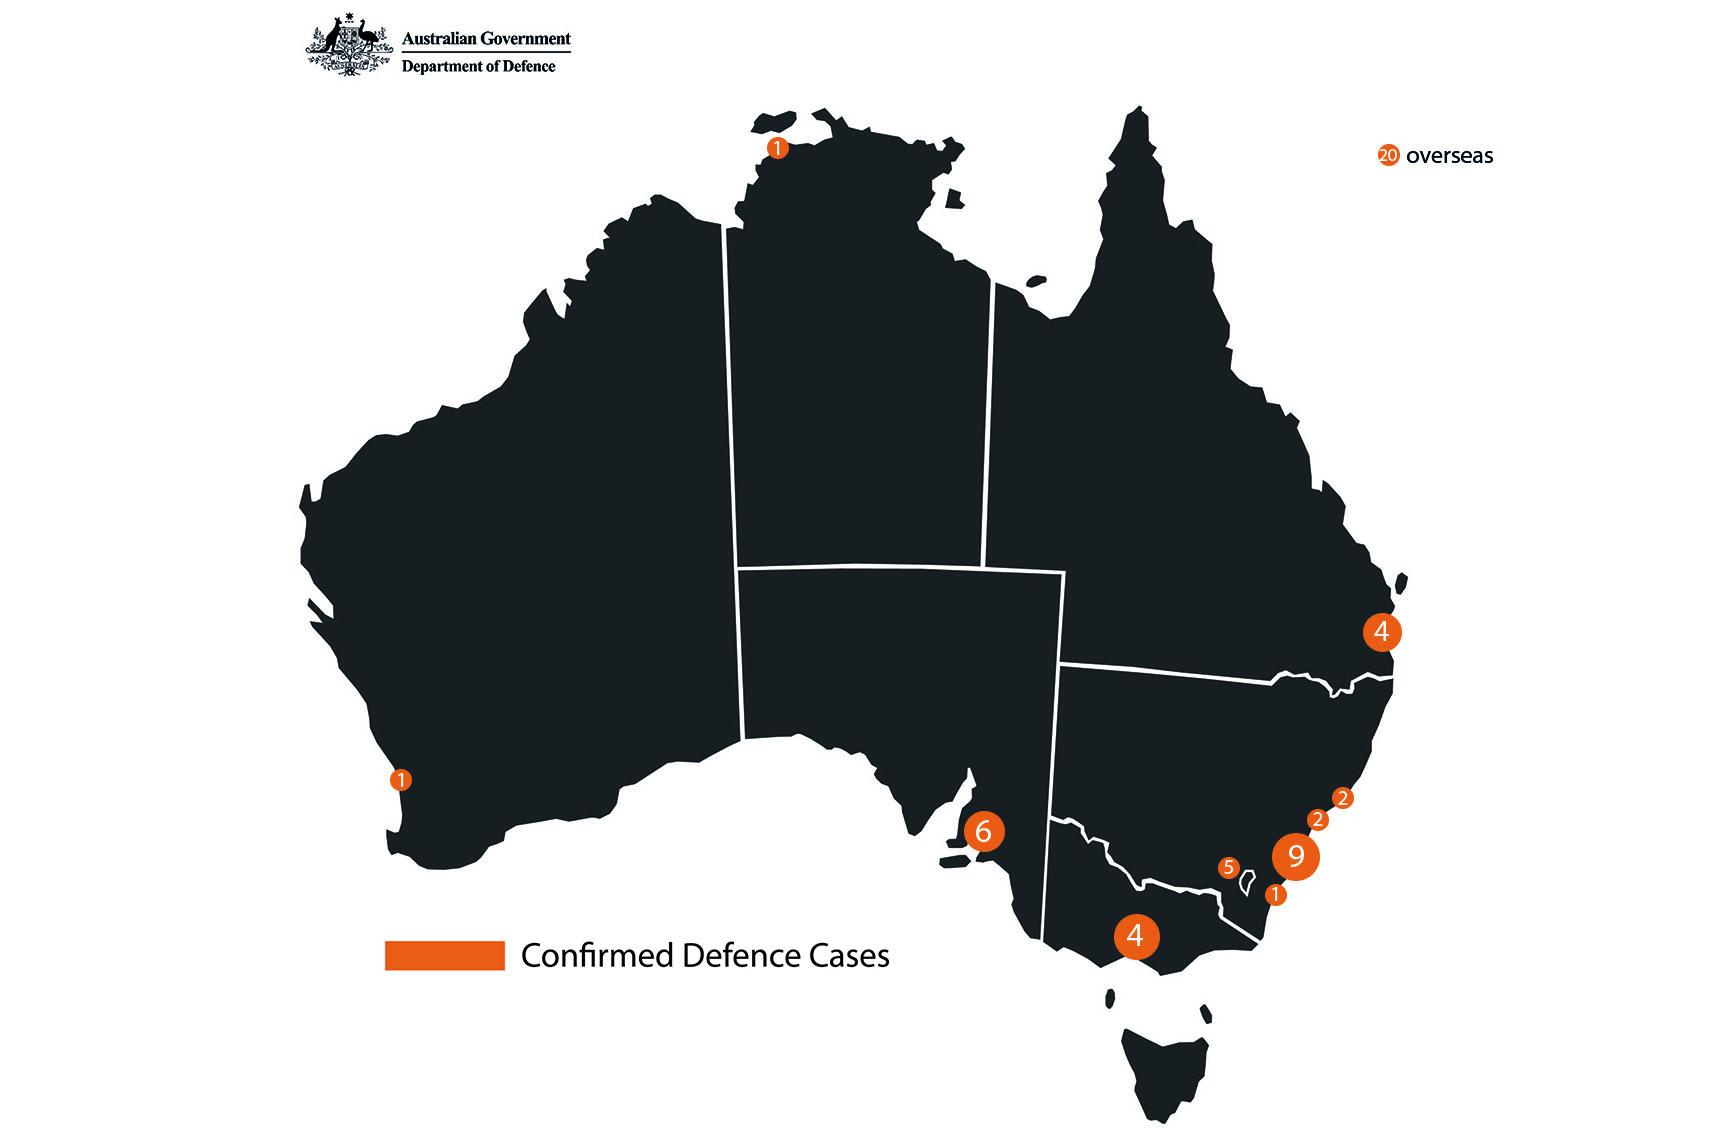 Defence is currently managing 55 cases of COVID-19 in the locations illustrated.